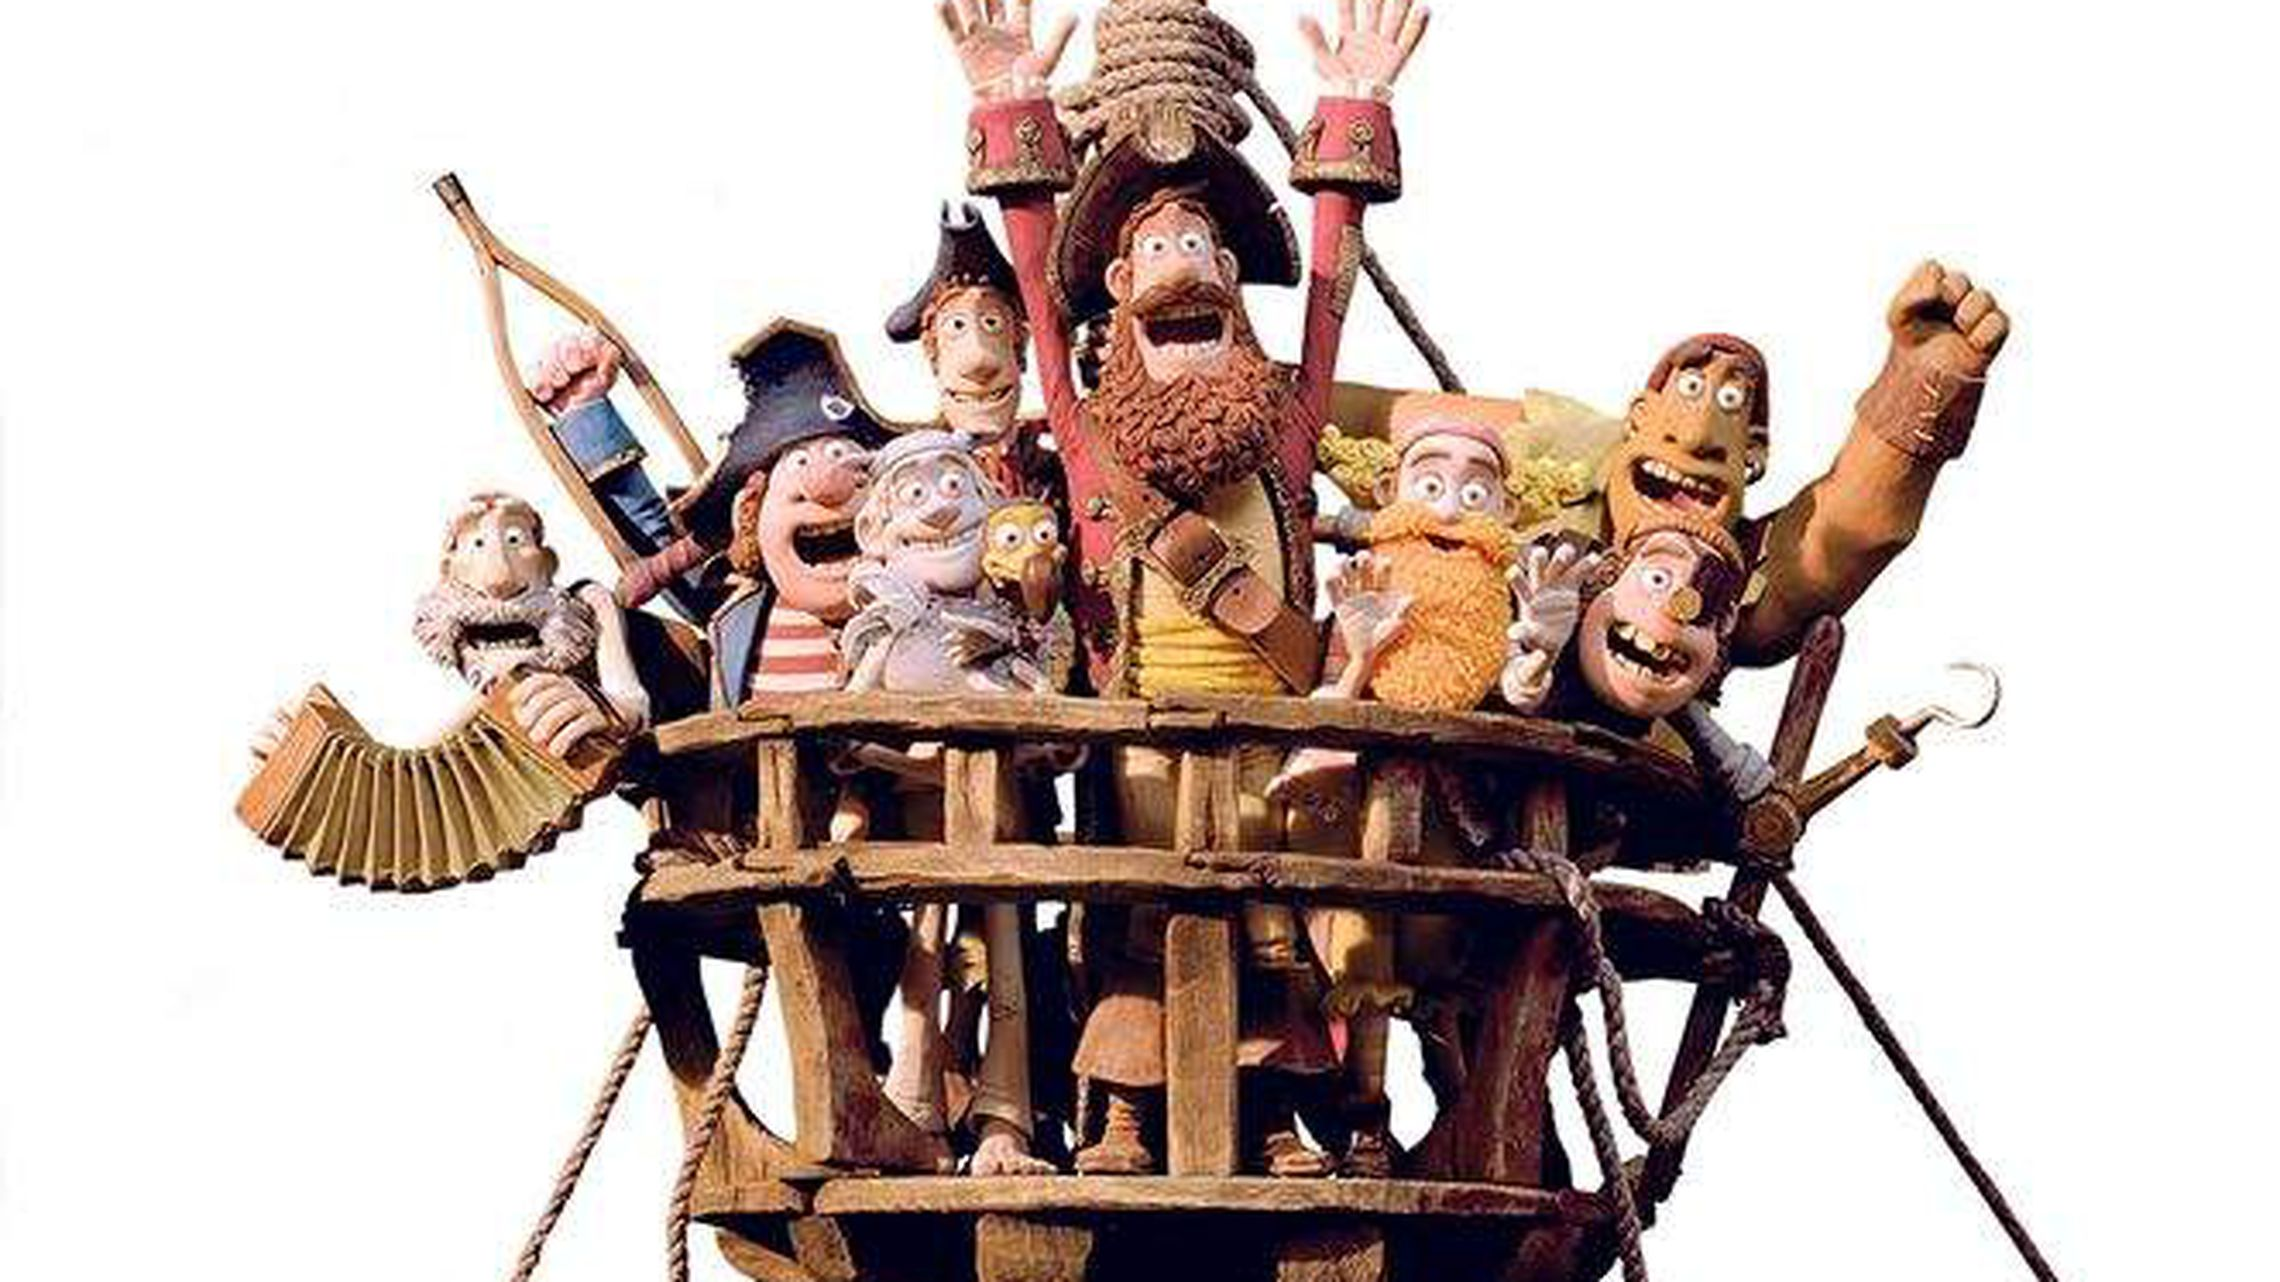 The Pirates Band Of Misfits Is A Stop Motion Movie With A Twist 3 D